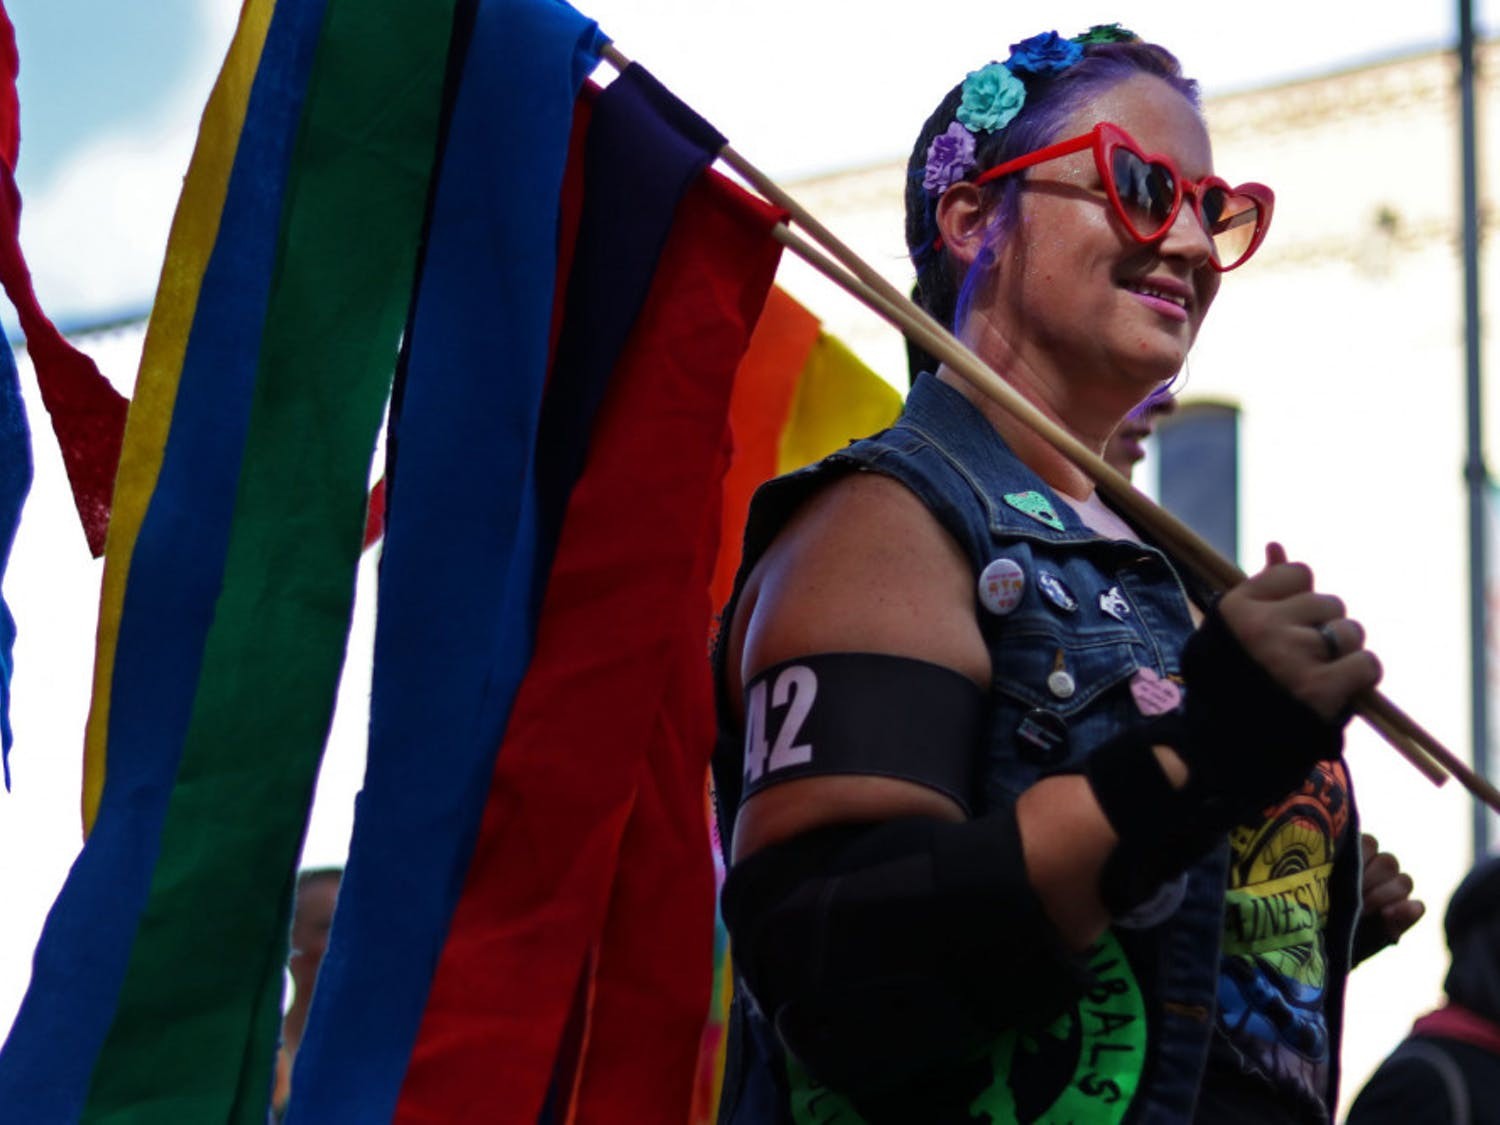 Jackie Korpela, known as Haley's Vomit, a member of the Ocala Cannibals Roller Derby team, skates Saturday in the Gainesville Pride Parade that marched down University Avenue and ended at Bo Diddley Plaza. Correction: This caption has been updated to reflect the name of Korpela.